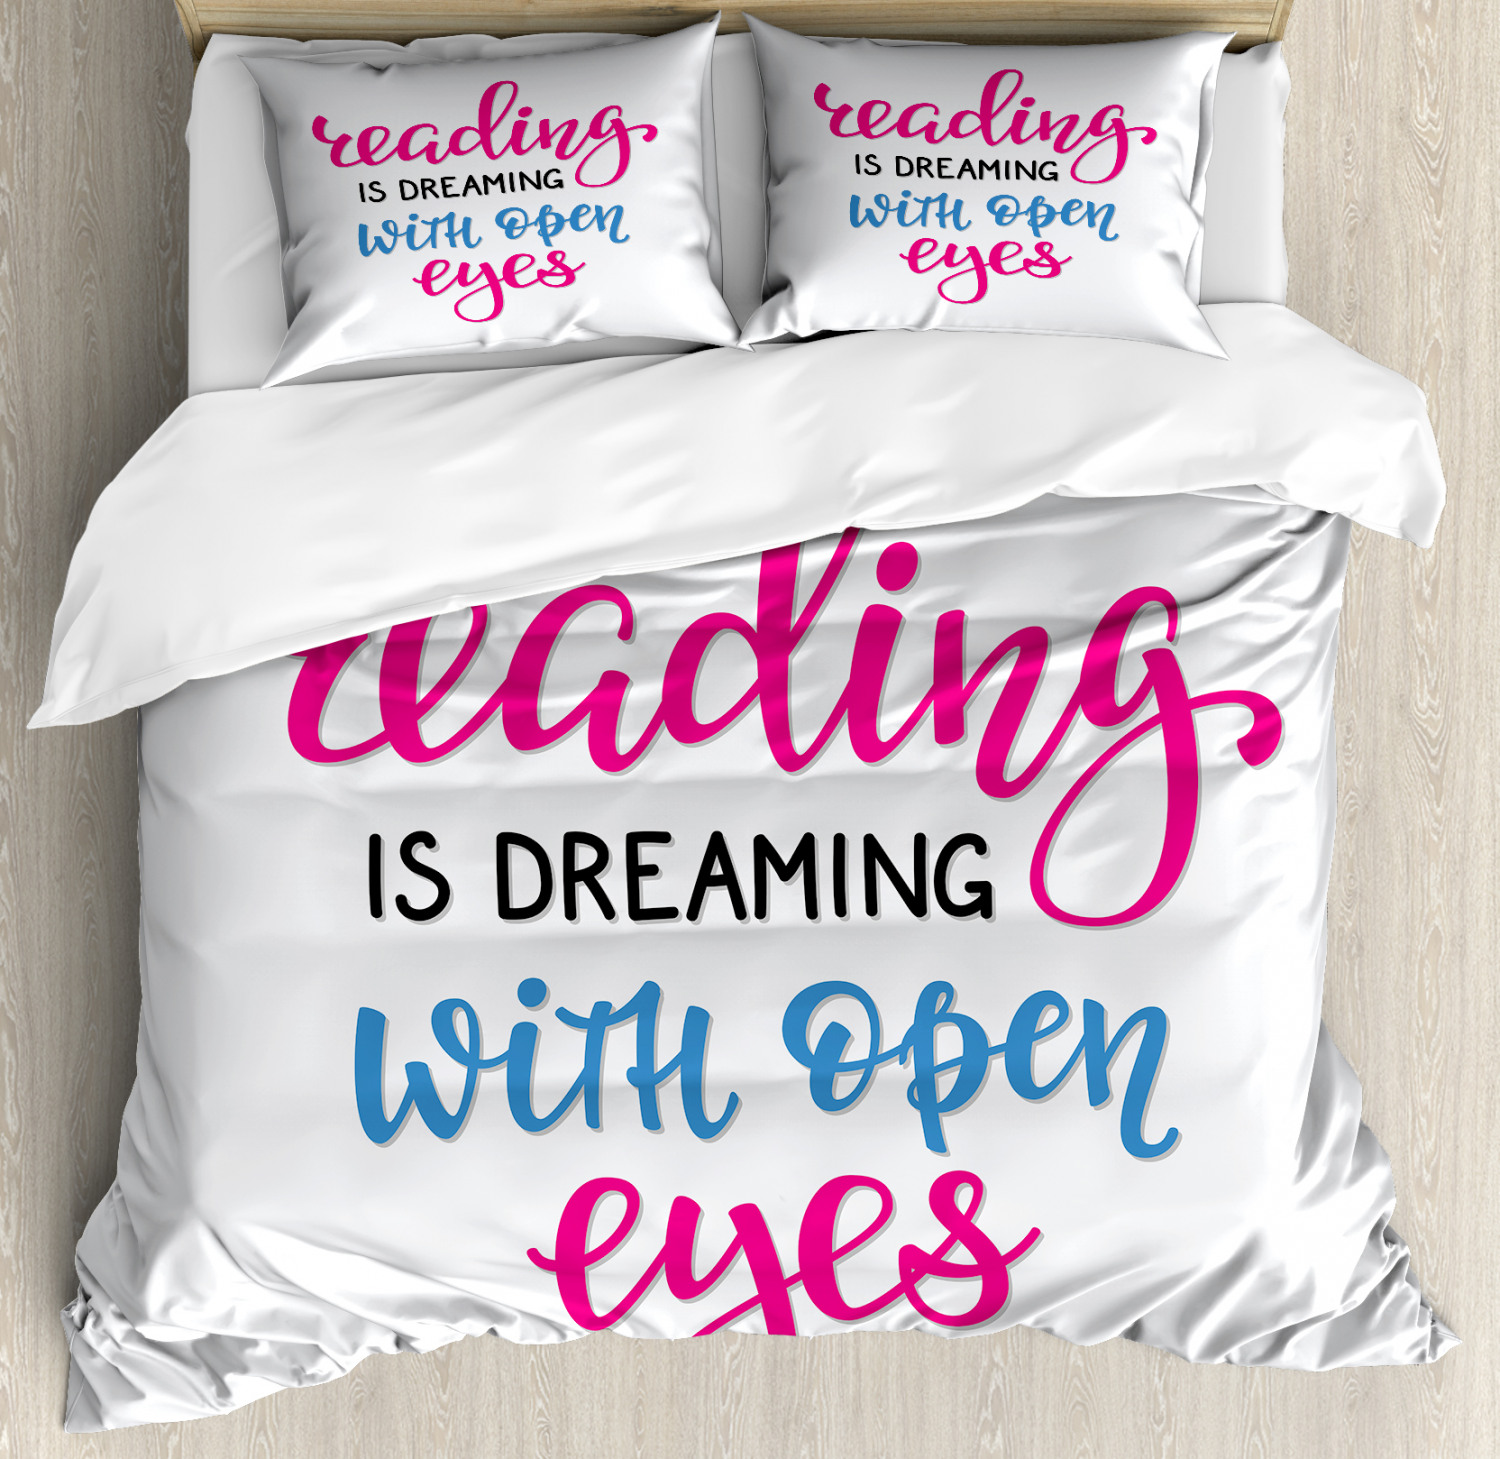 Book Duvet Cover Set with Pillow Shams Reading is Dreaming Q